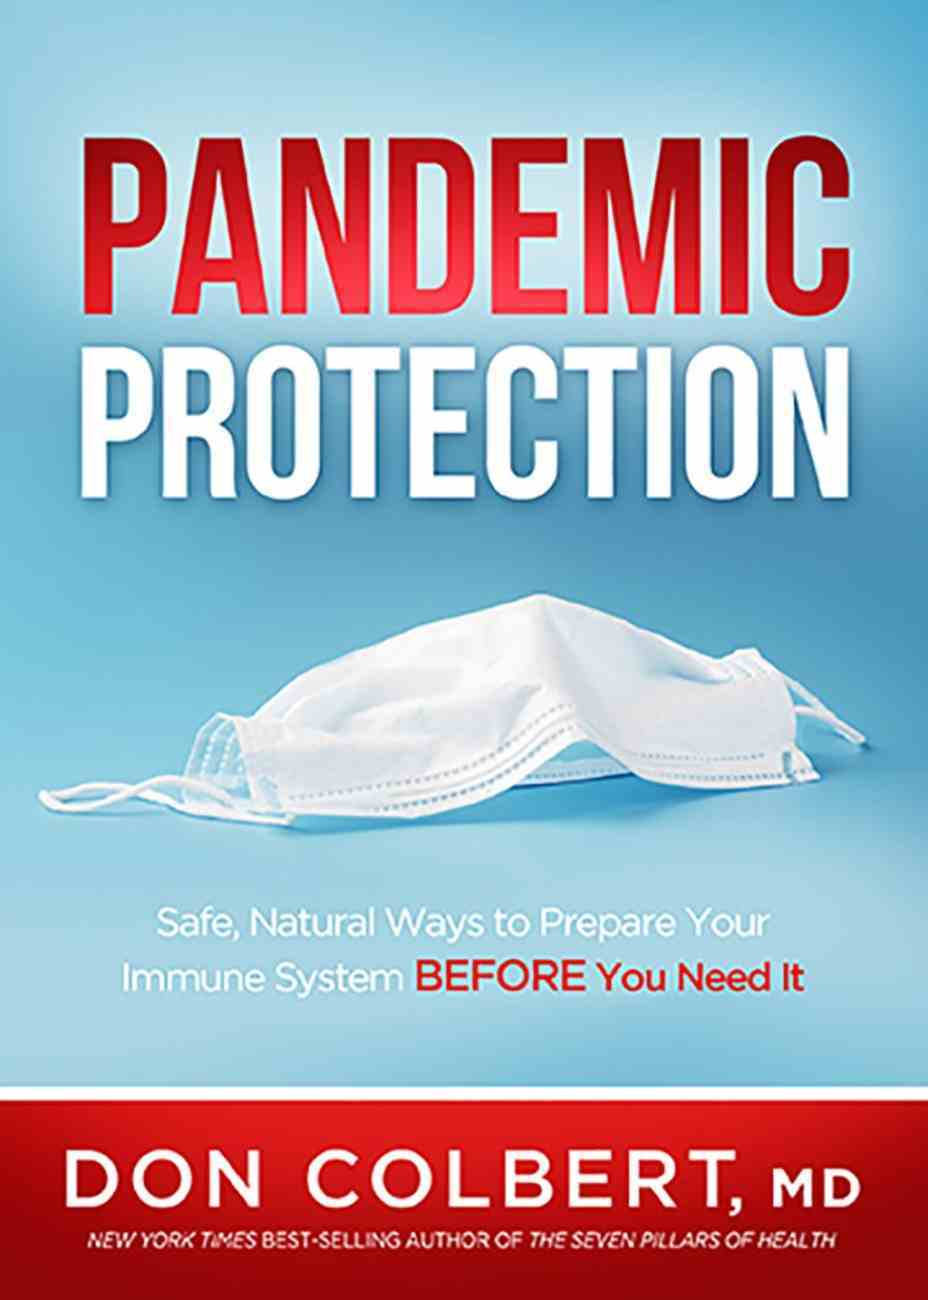 Pandemic Protection: Safe, Natural Ways to Prepare Your Immune System Before You Need It Paperback